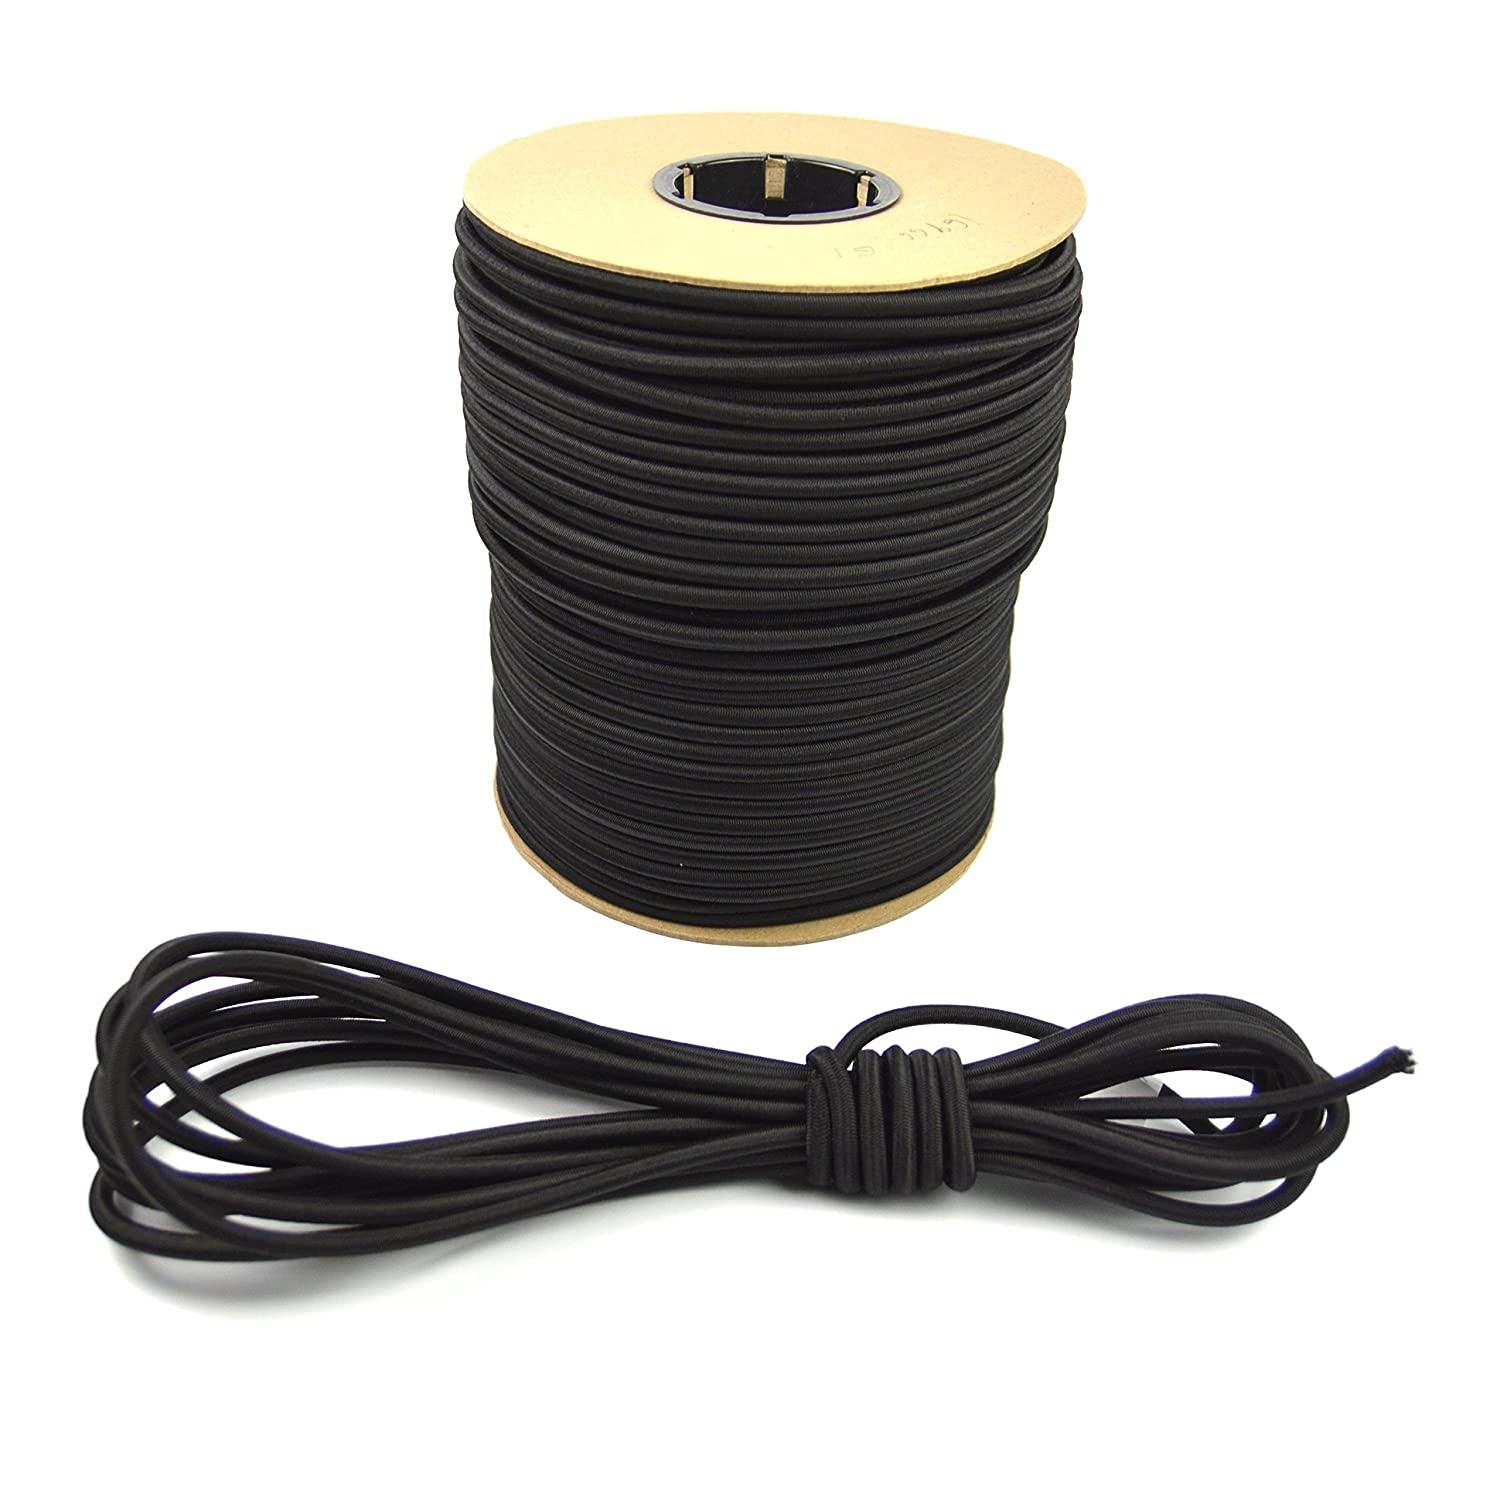 50 Feet Tie Down Trailer Strap 15-100ft Feet Variations Crafting Stretch String Marine Masters 5//16 Black Bungee // Shock Cord